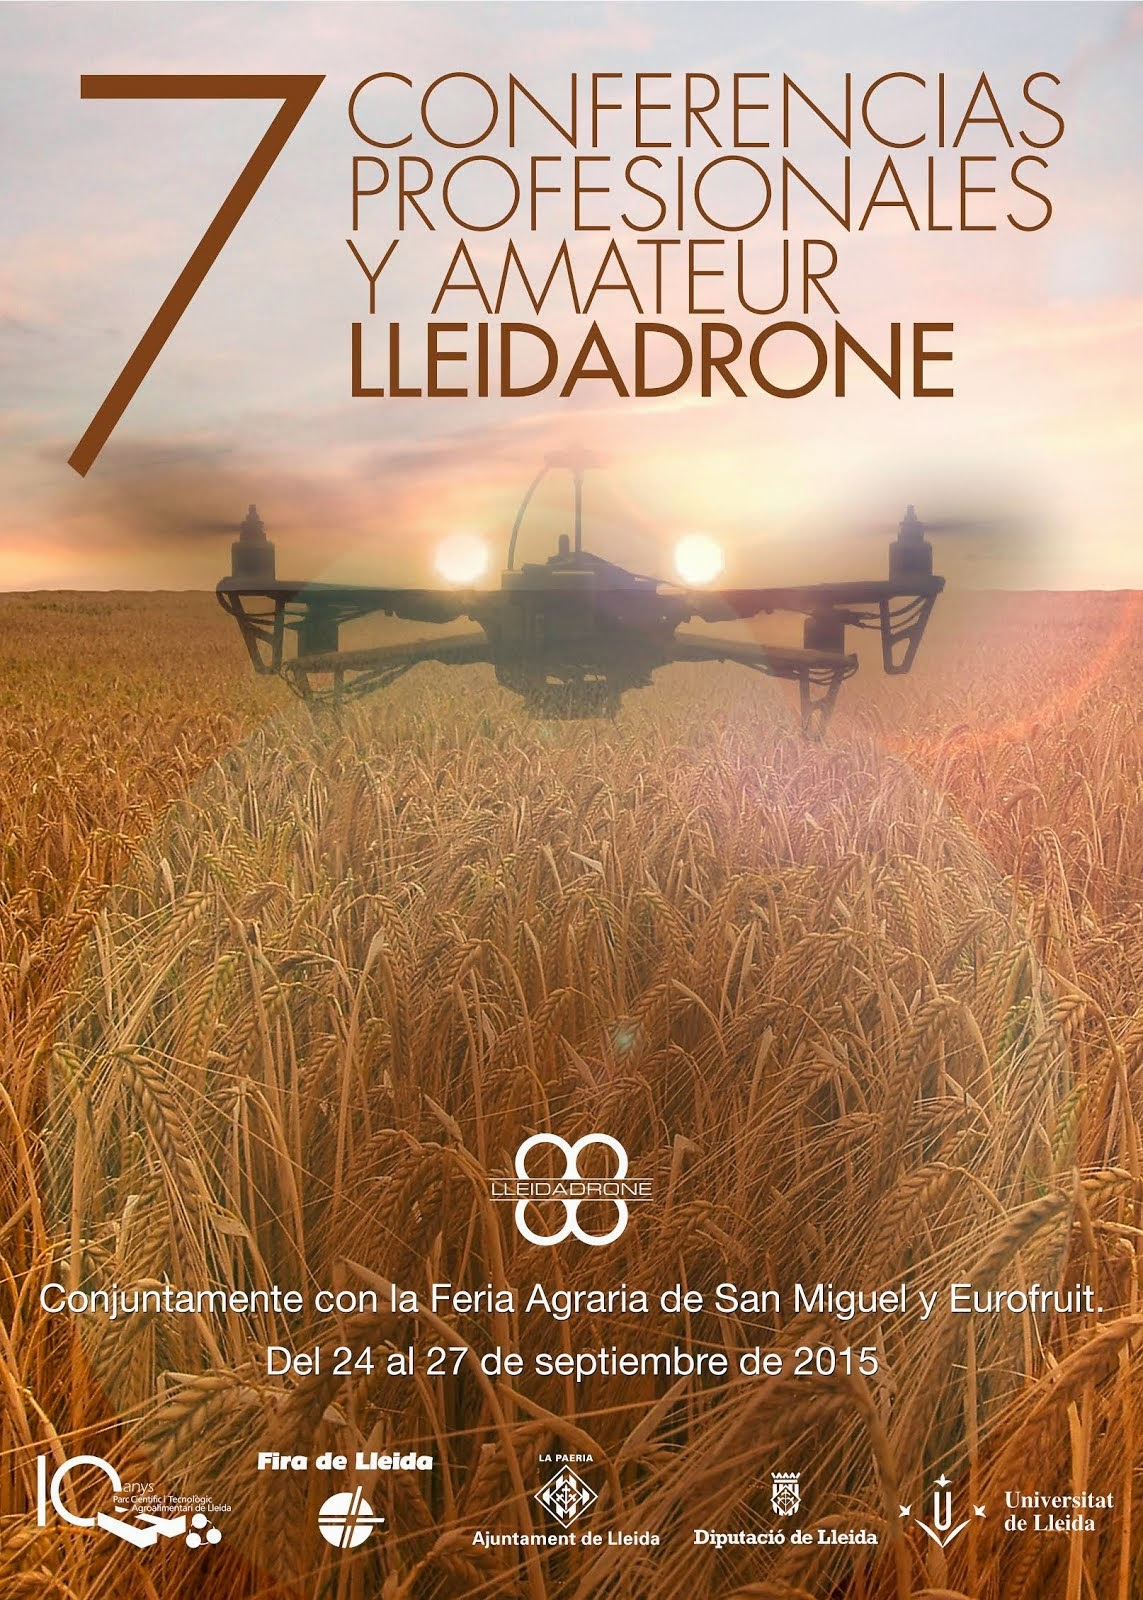 7 Conferencias Lleida Drone